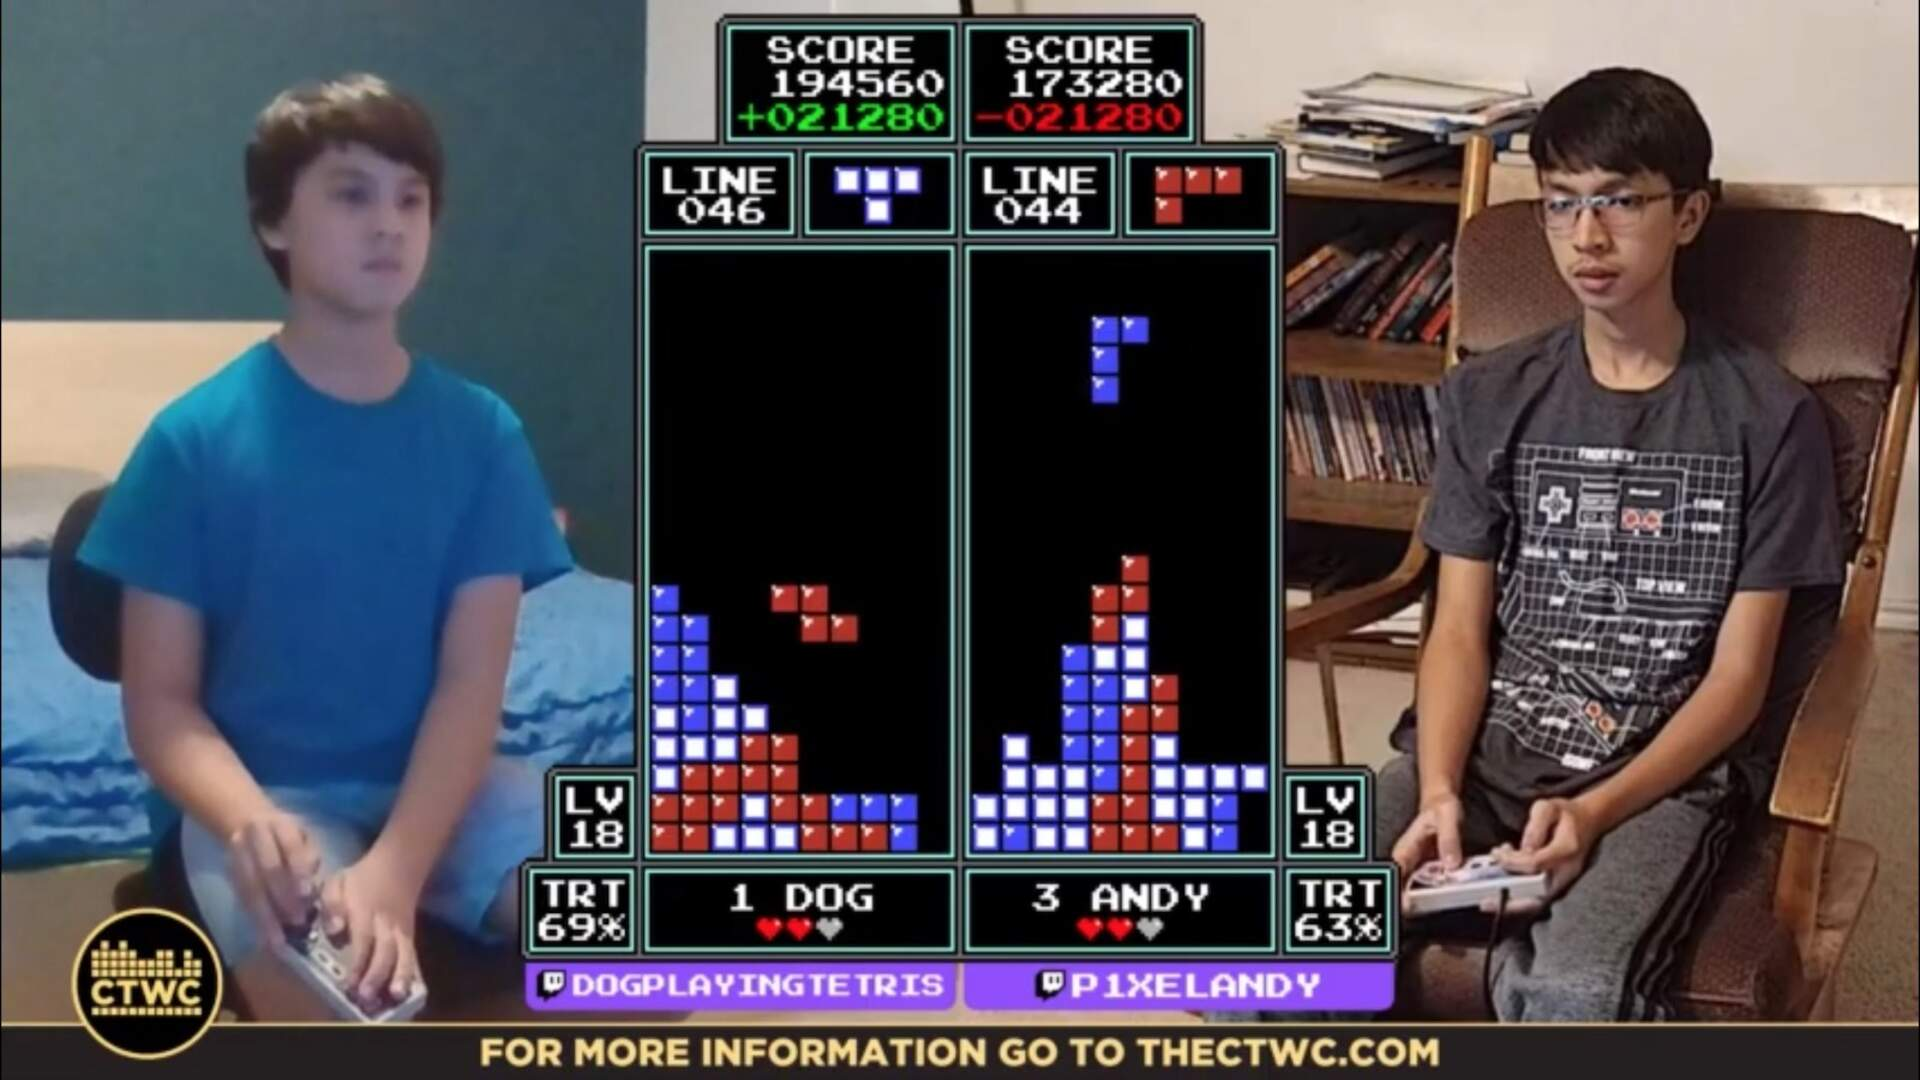 NES Tetris Tournament Crowns New World Champion in Brother Against Brother Battle